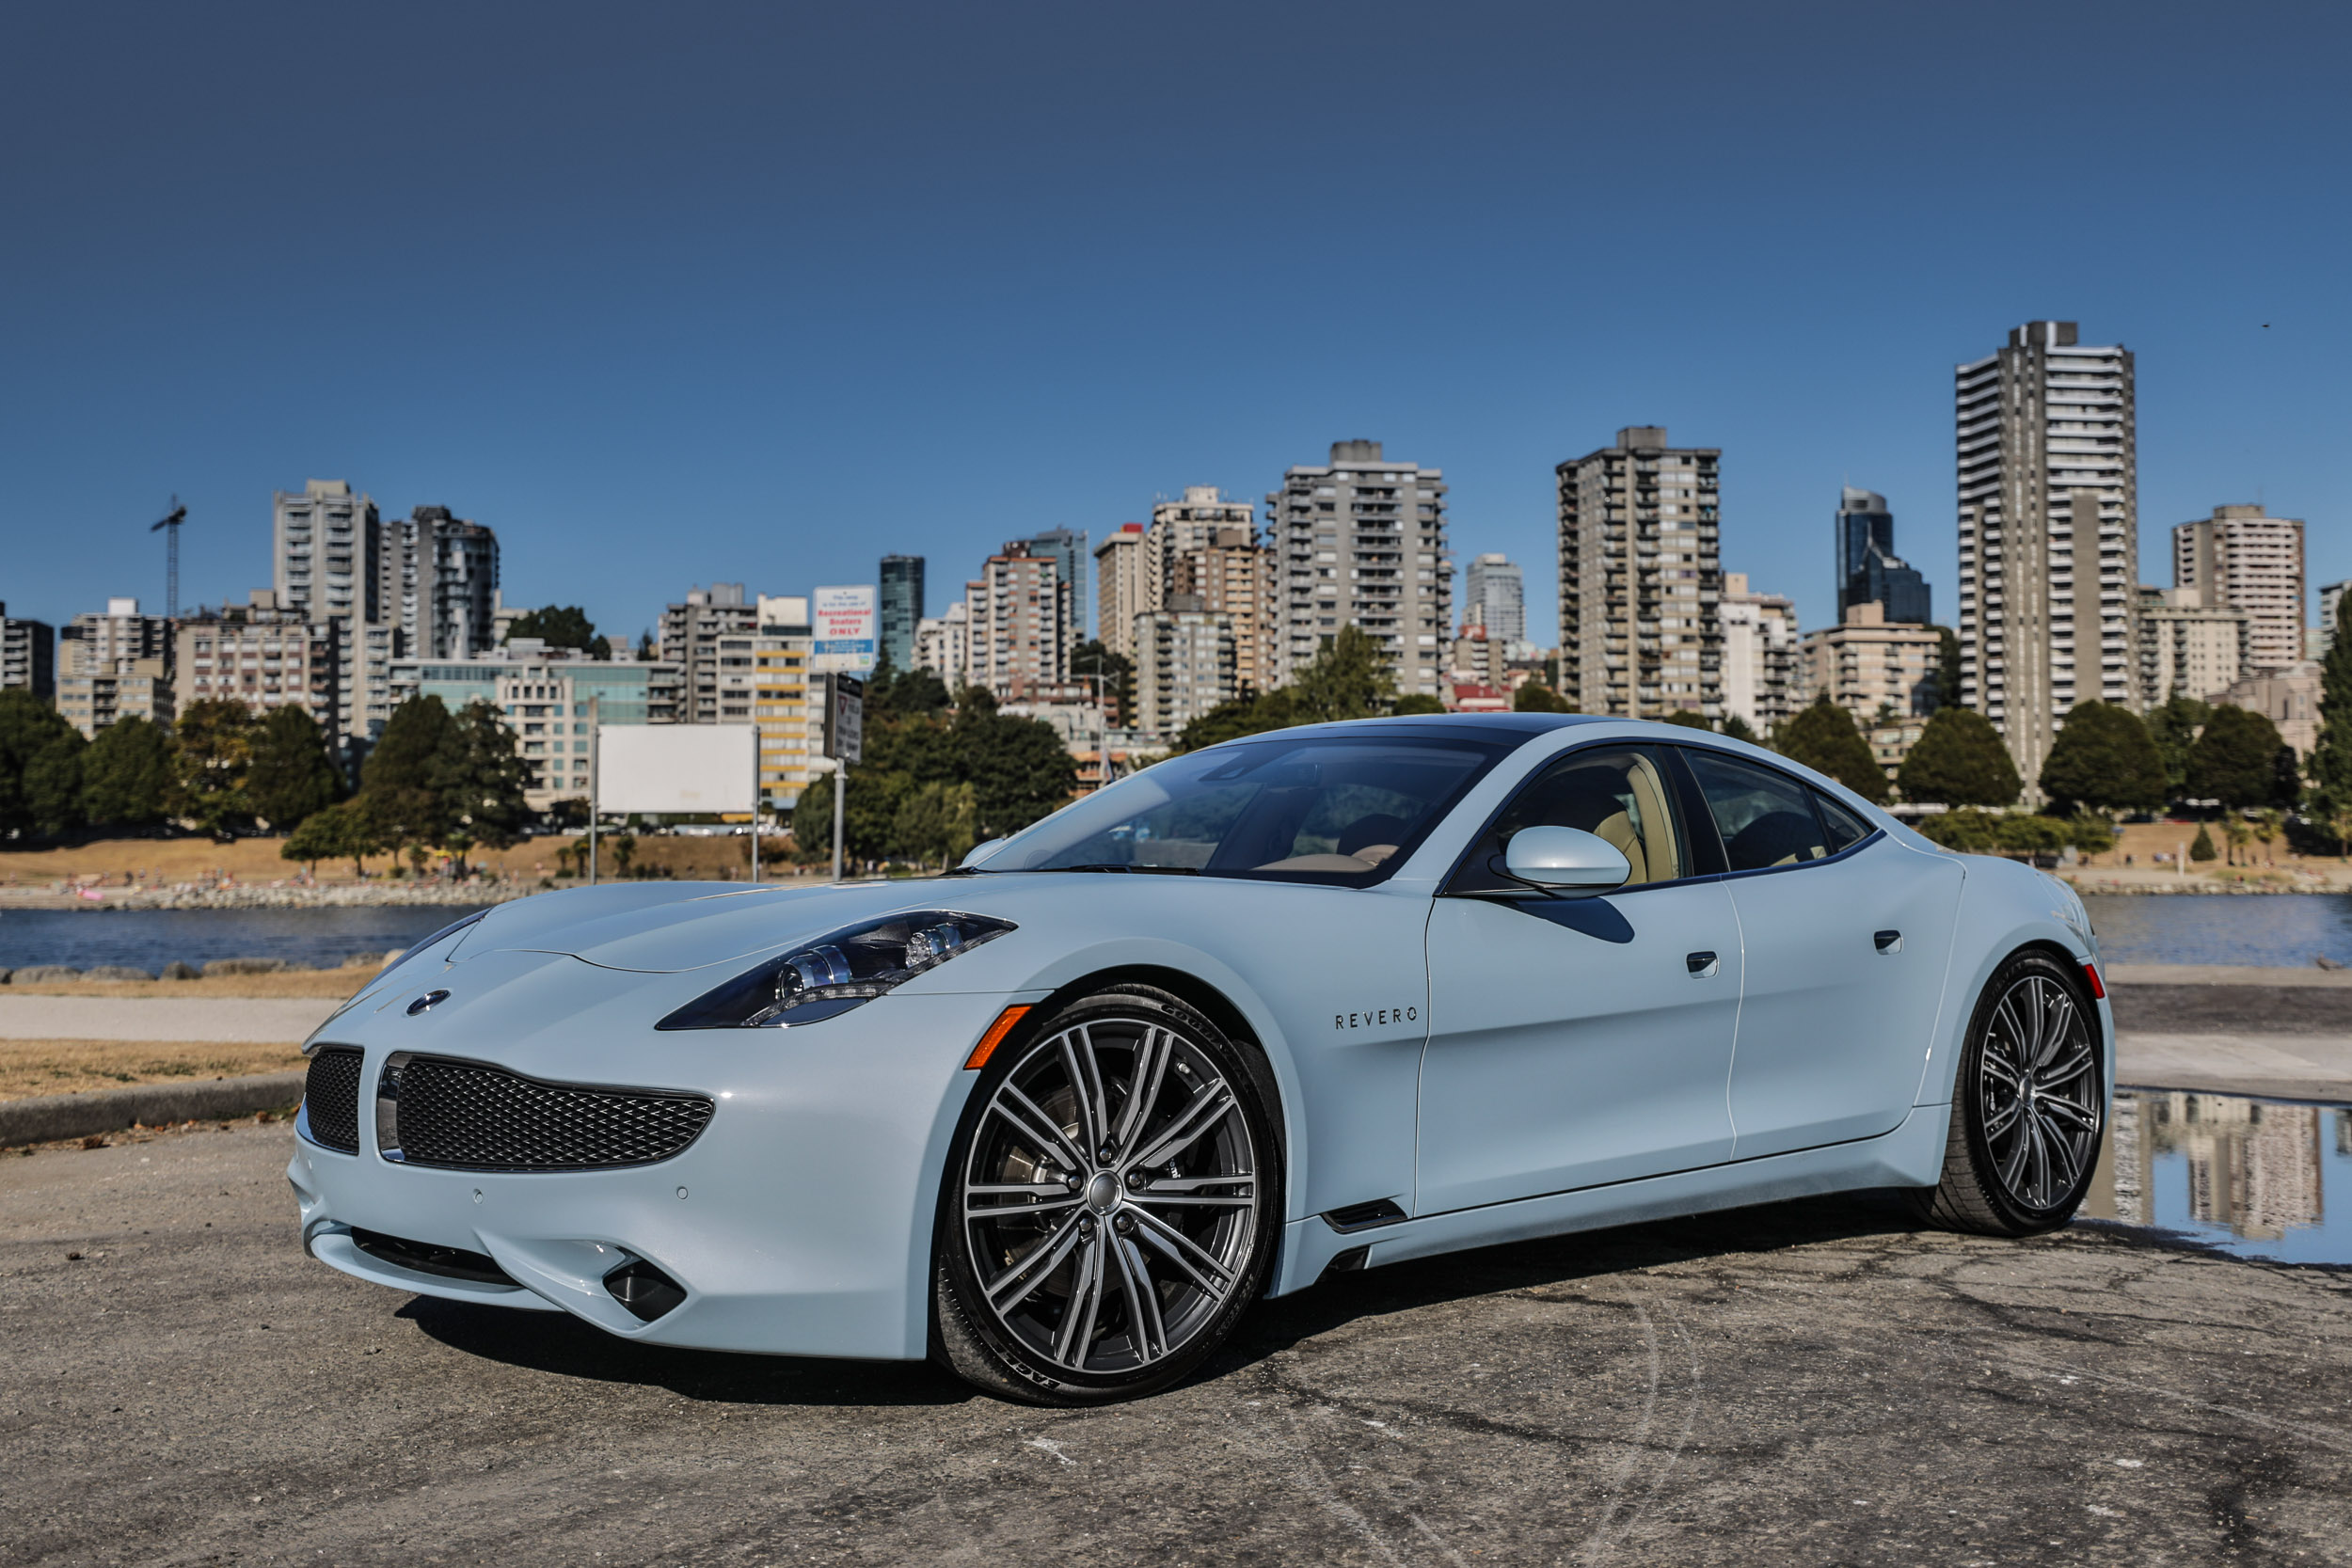 Karma Revero has been named the 2018 Green Car of the Year beating out Porsche, Cadillac and BMW.